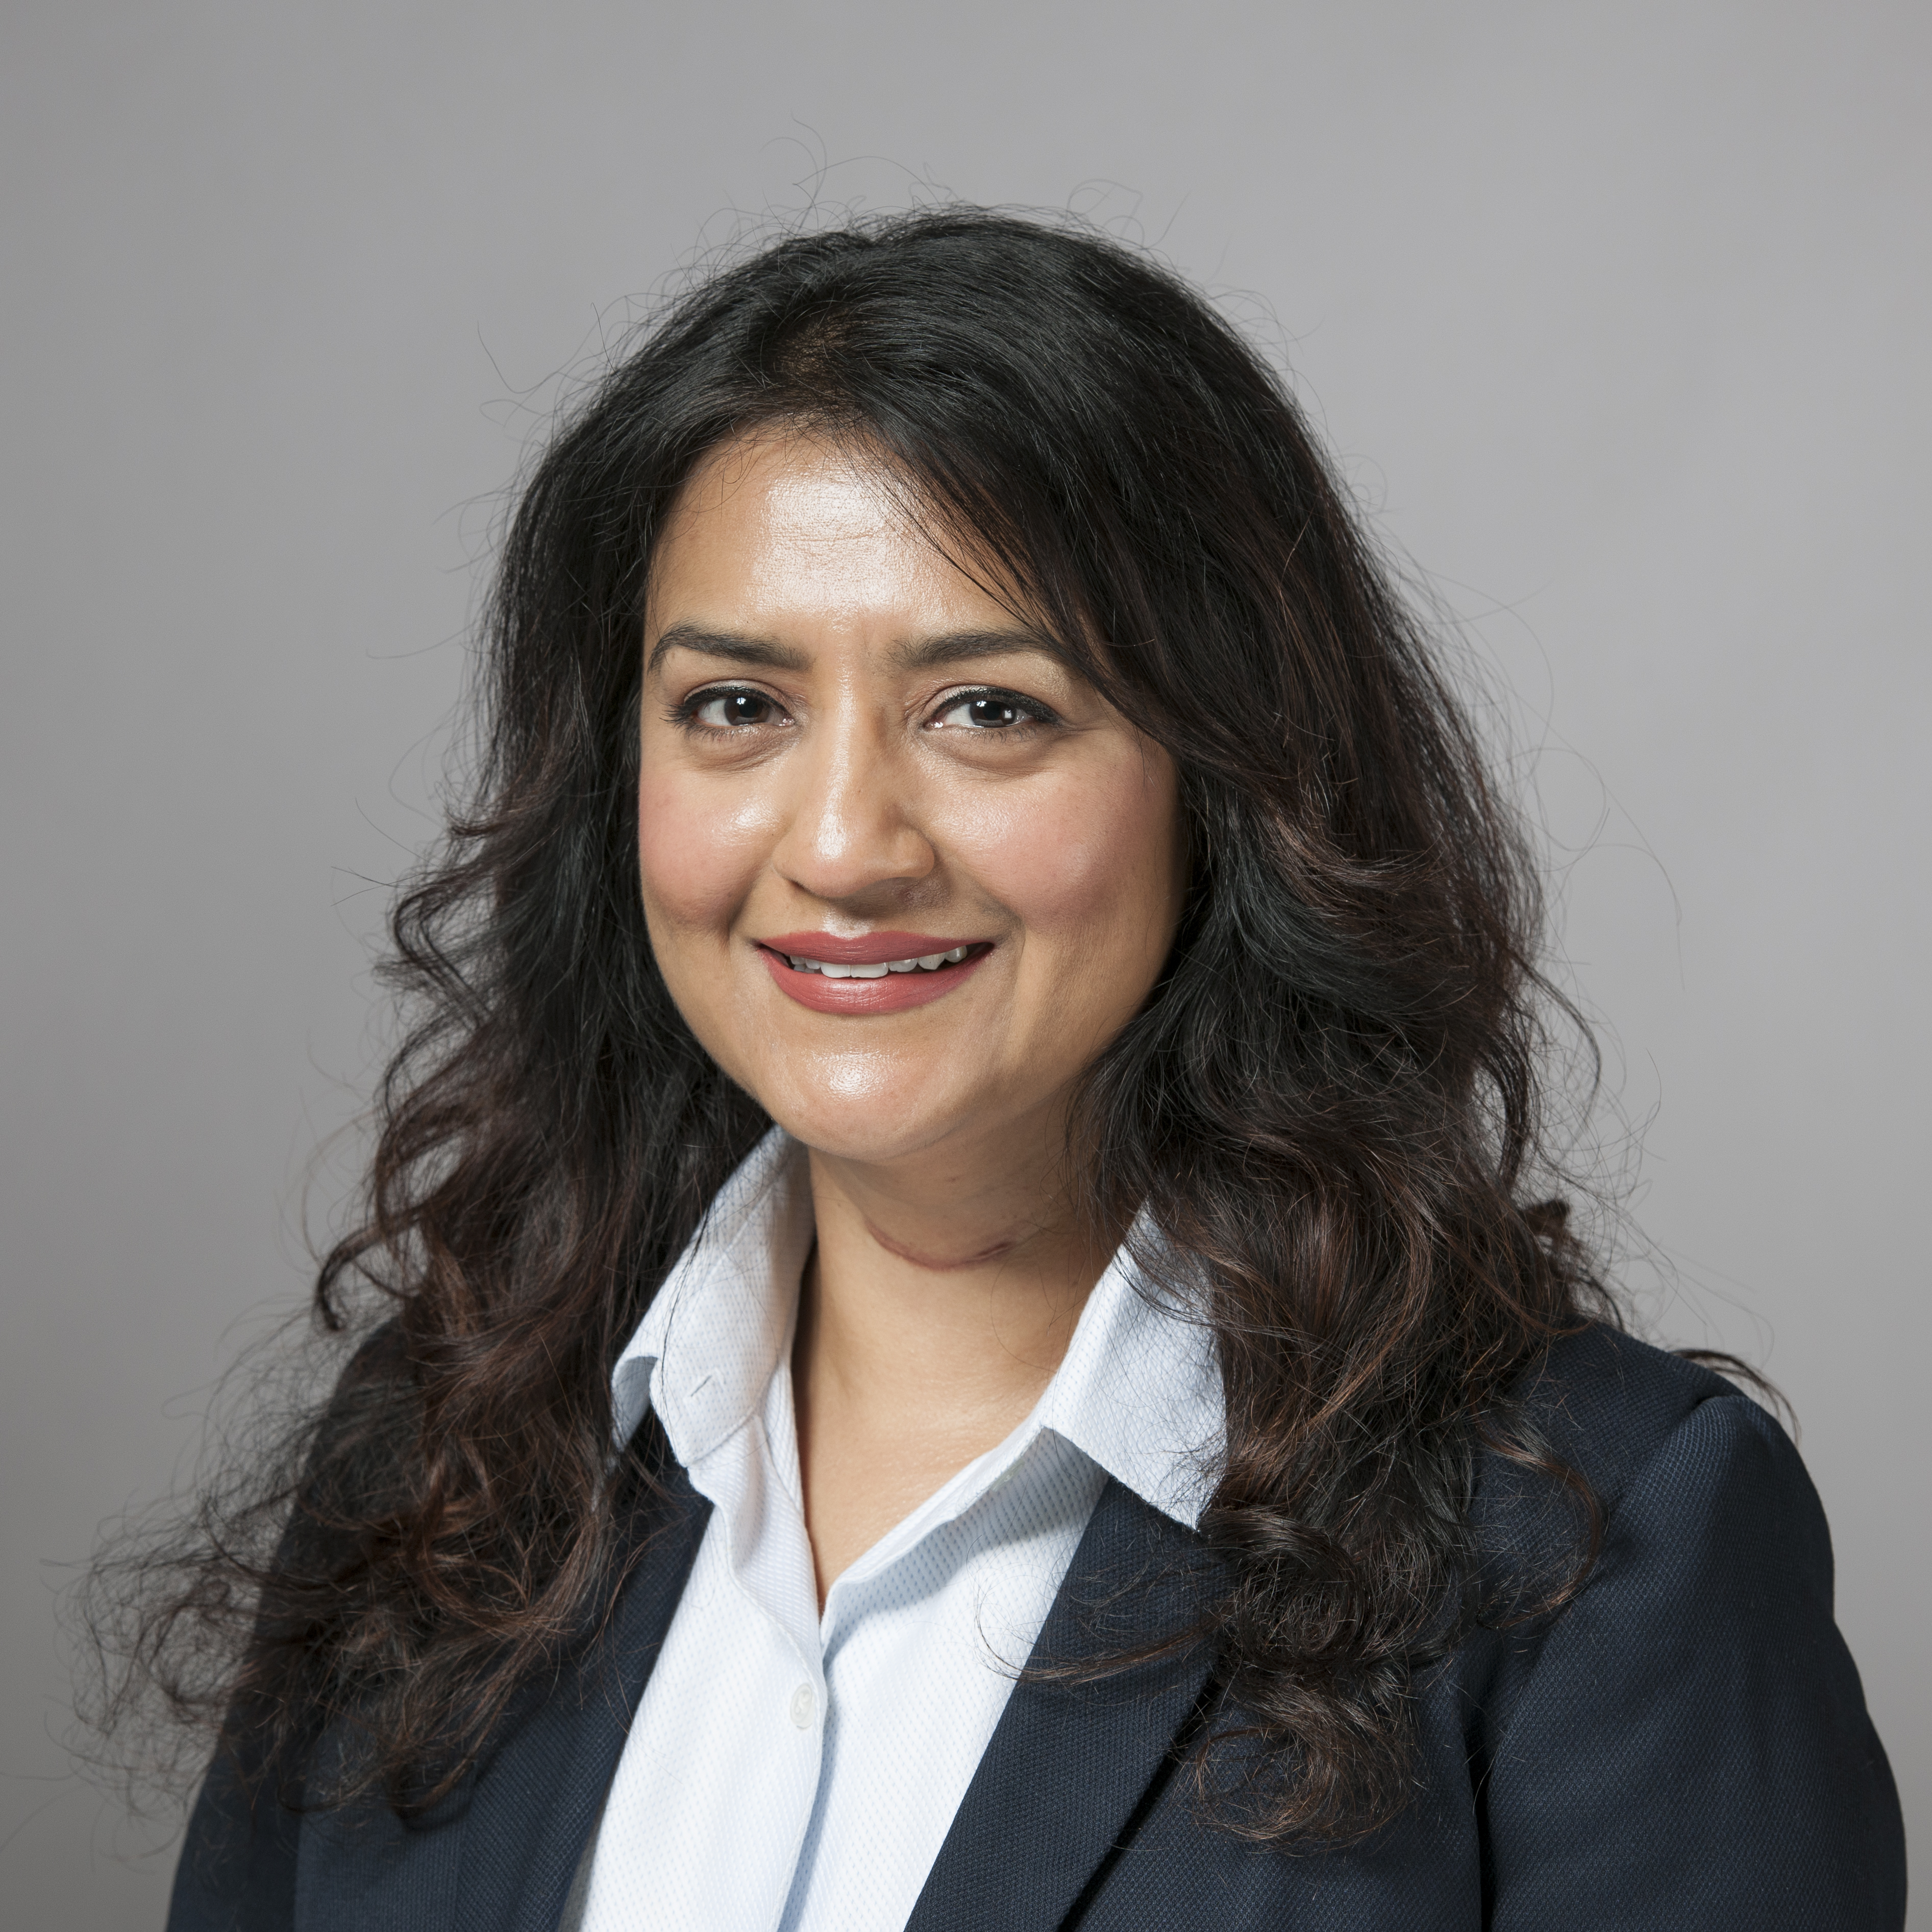 Rothamsted staff - Swatee Jasoria